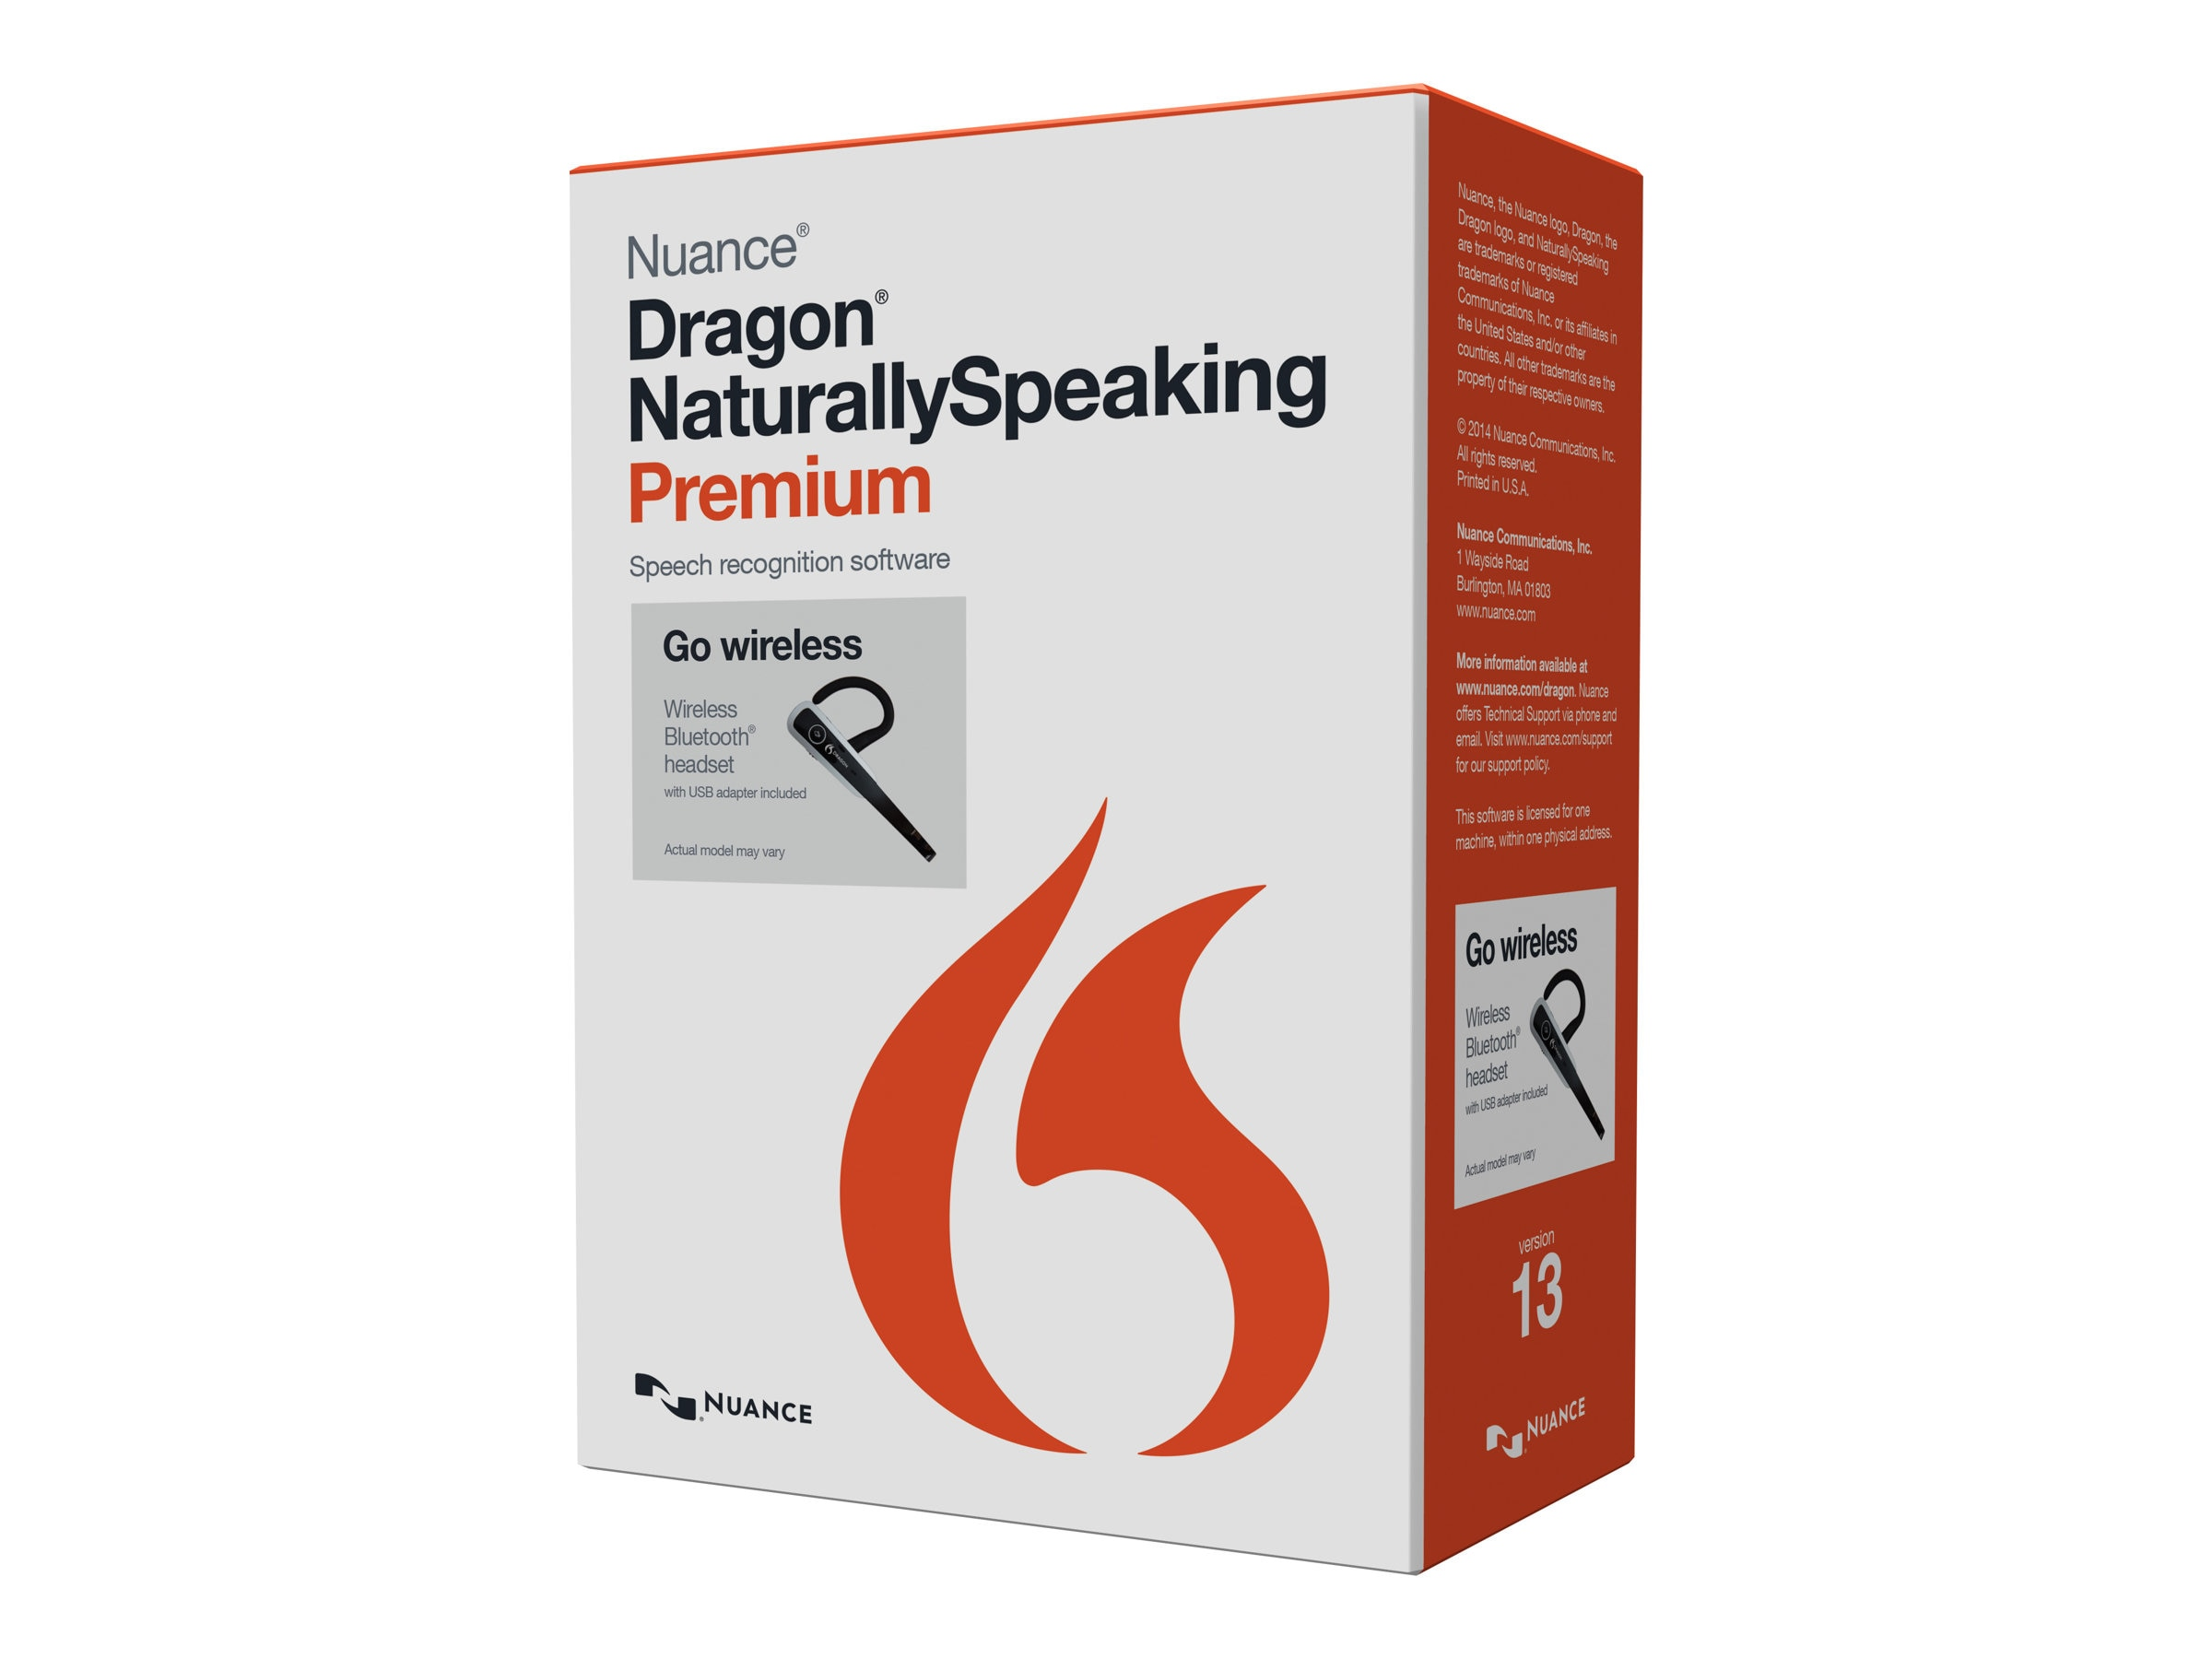 Nuance Dragon NaturallySpeaking 13.0 Premium w Bluetooth Headset - French